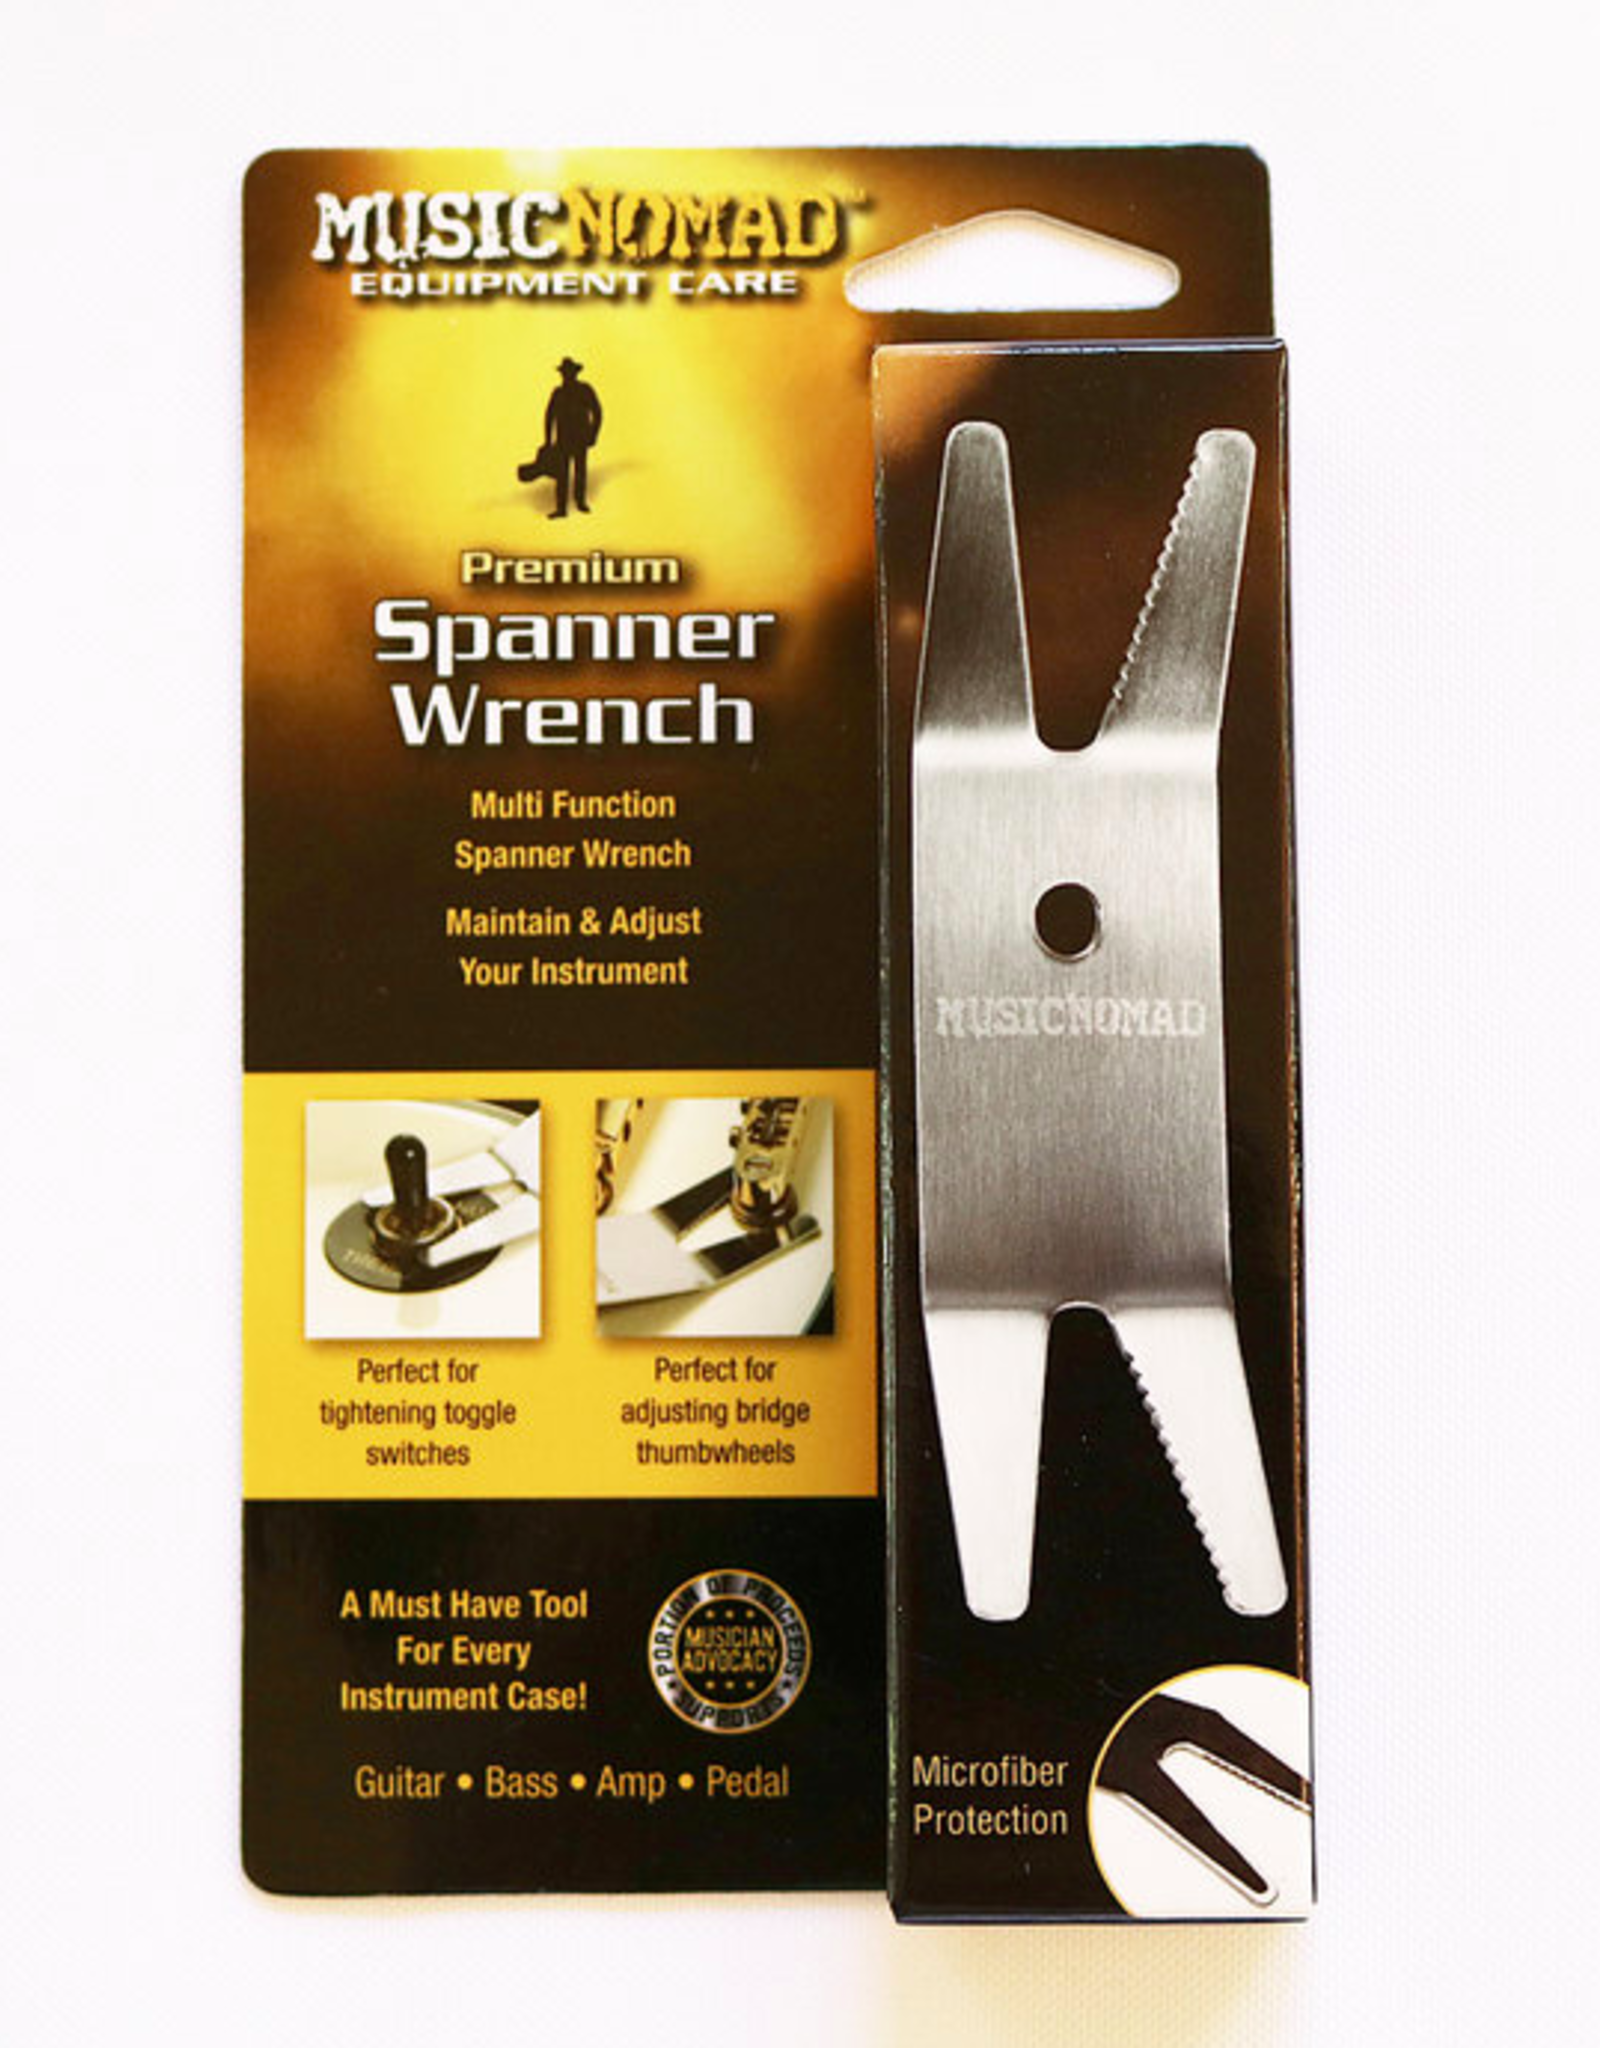 MUSIC NOMAD Music Nomad Premier Spanner Wrench w/Microfiber Suede Backing